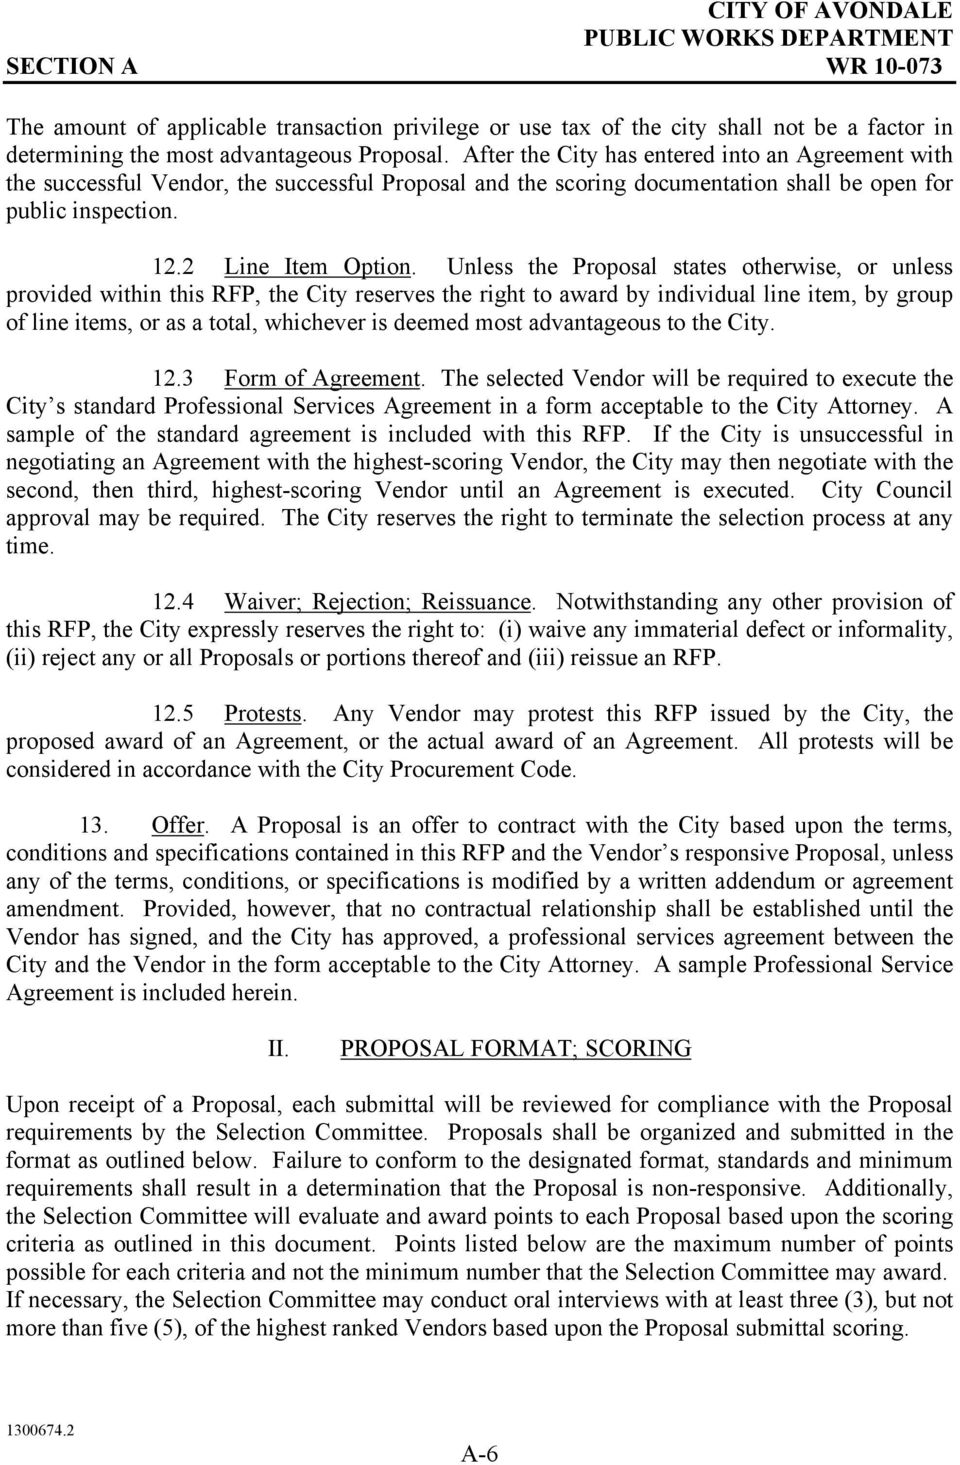 Unless the Proposal states otherwise, or unless provided within this RFP, the City reserves the right to award by individual line item, by group of line items, or as a total, whichever is deemed most